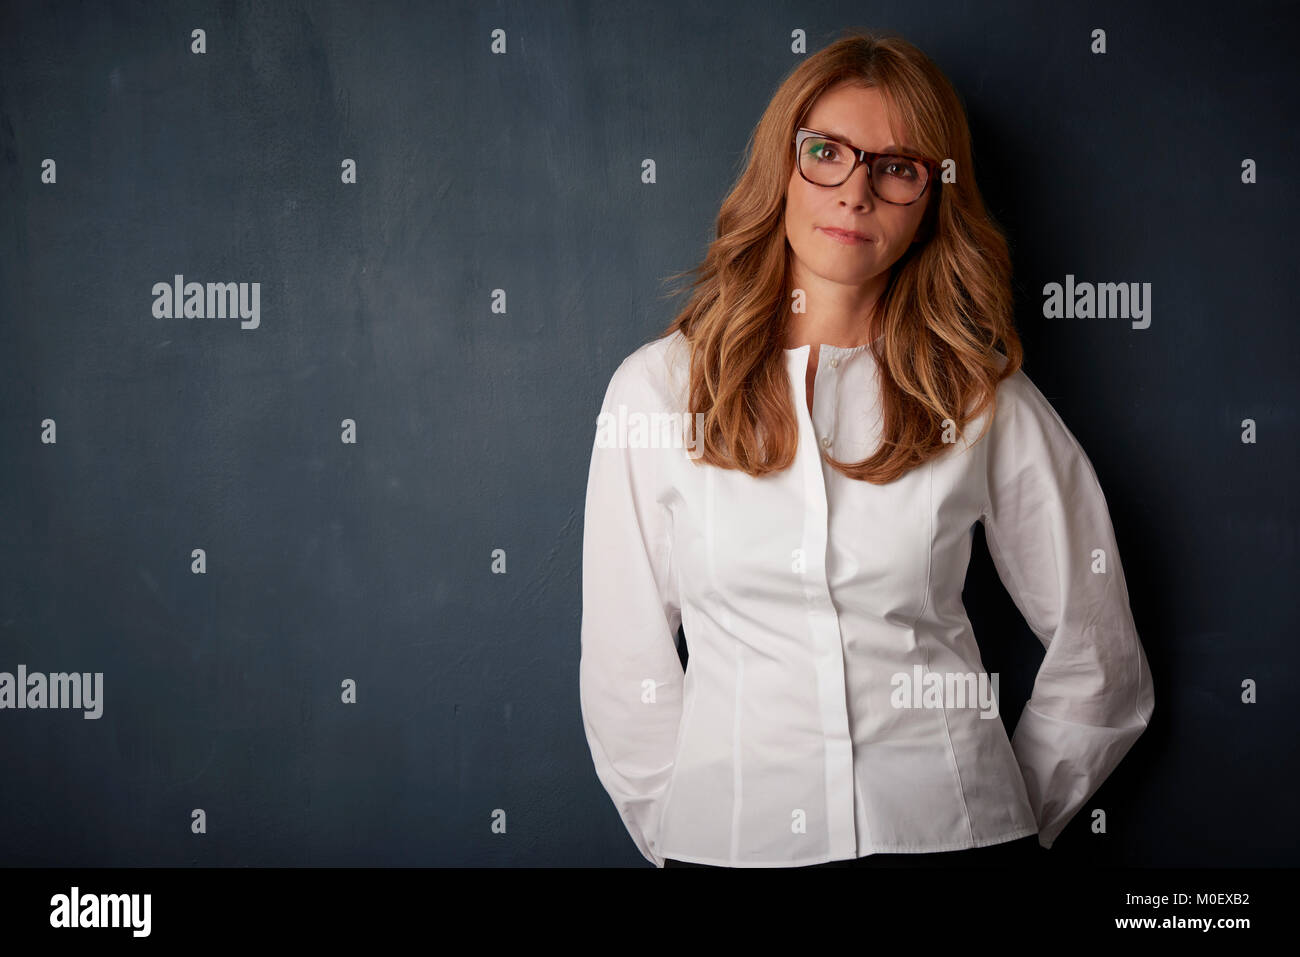 Studio portrait of a beautiful smiling mature woman wearing eyewear and white shirt while standing at dark background. - Stock Image